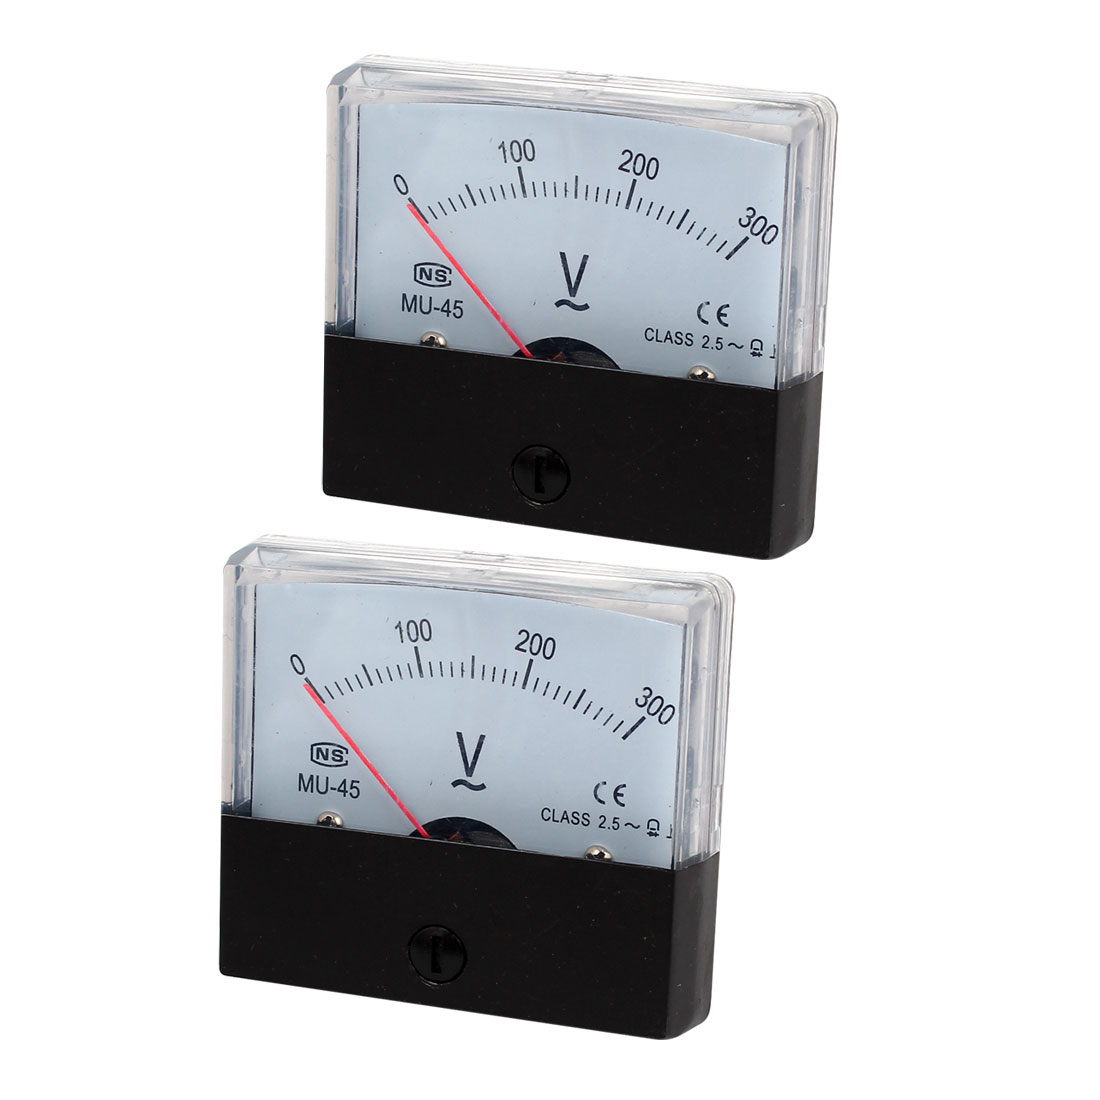 AC 0~300V Class 2.5 Voltmeter Analog Volt Panel Meter MU-45 2 Pcs